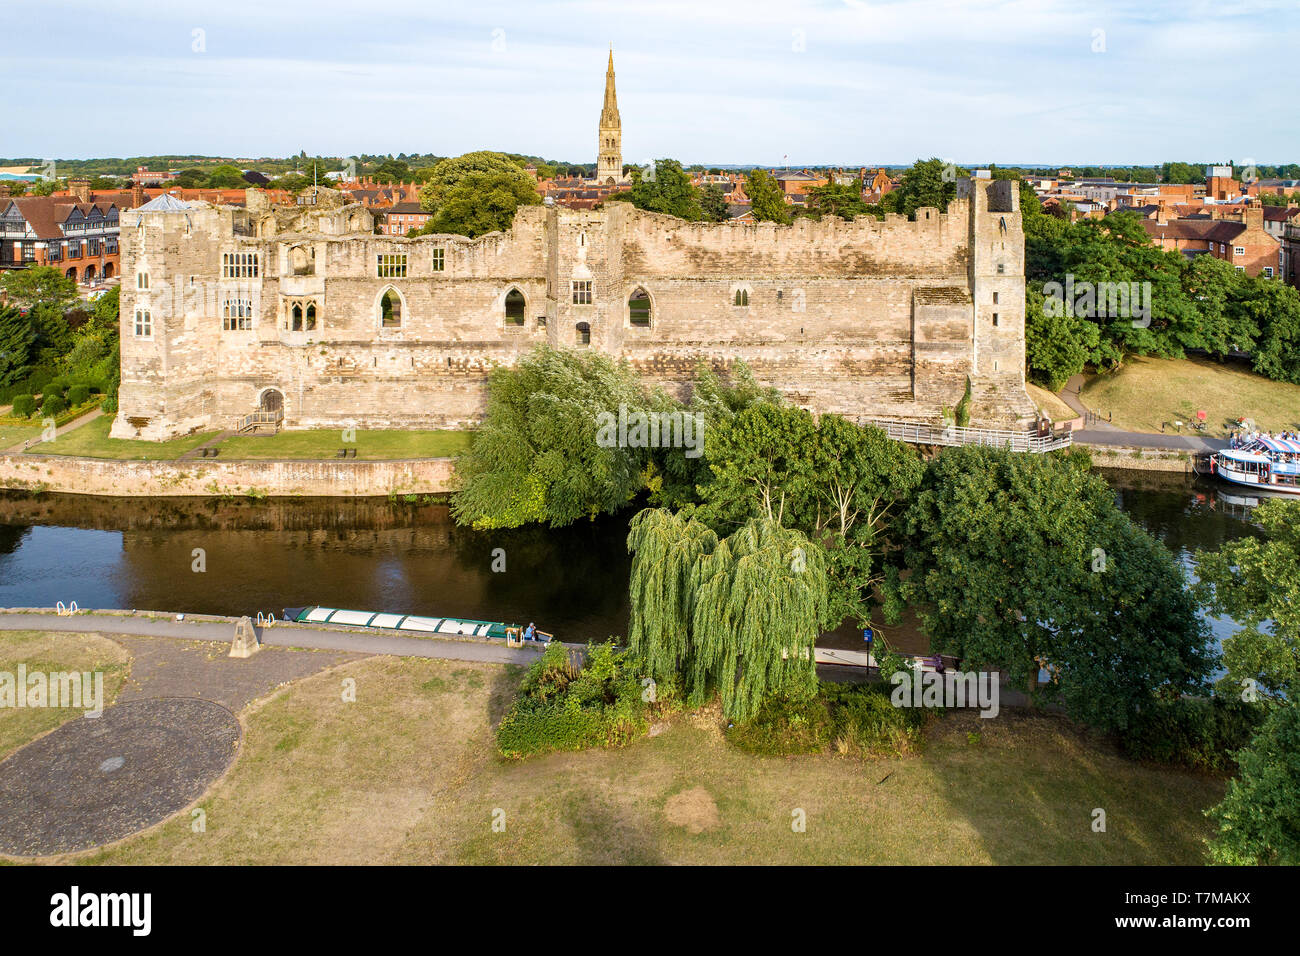 Ruins of medieval Gothic castle in Newark on Trent, near Nottingham, Nottinghamshire, England, UK. Aerial view with Trent River in sunset light. - Stock Image